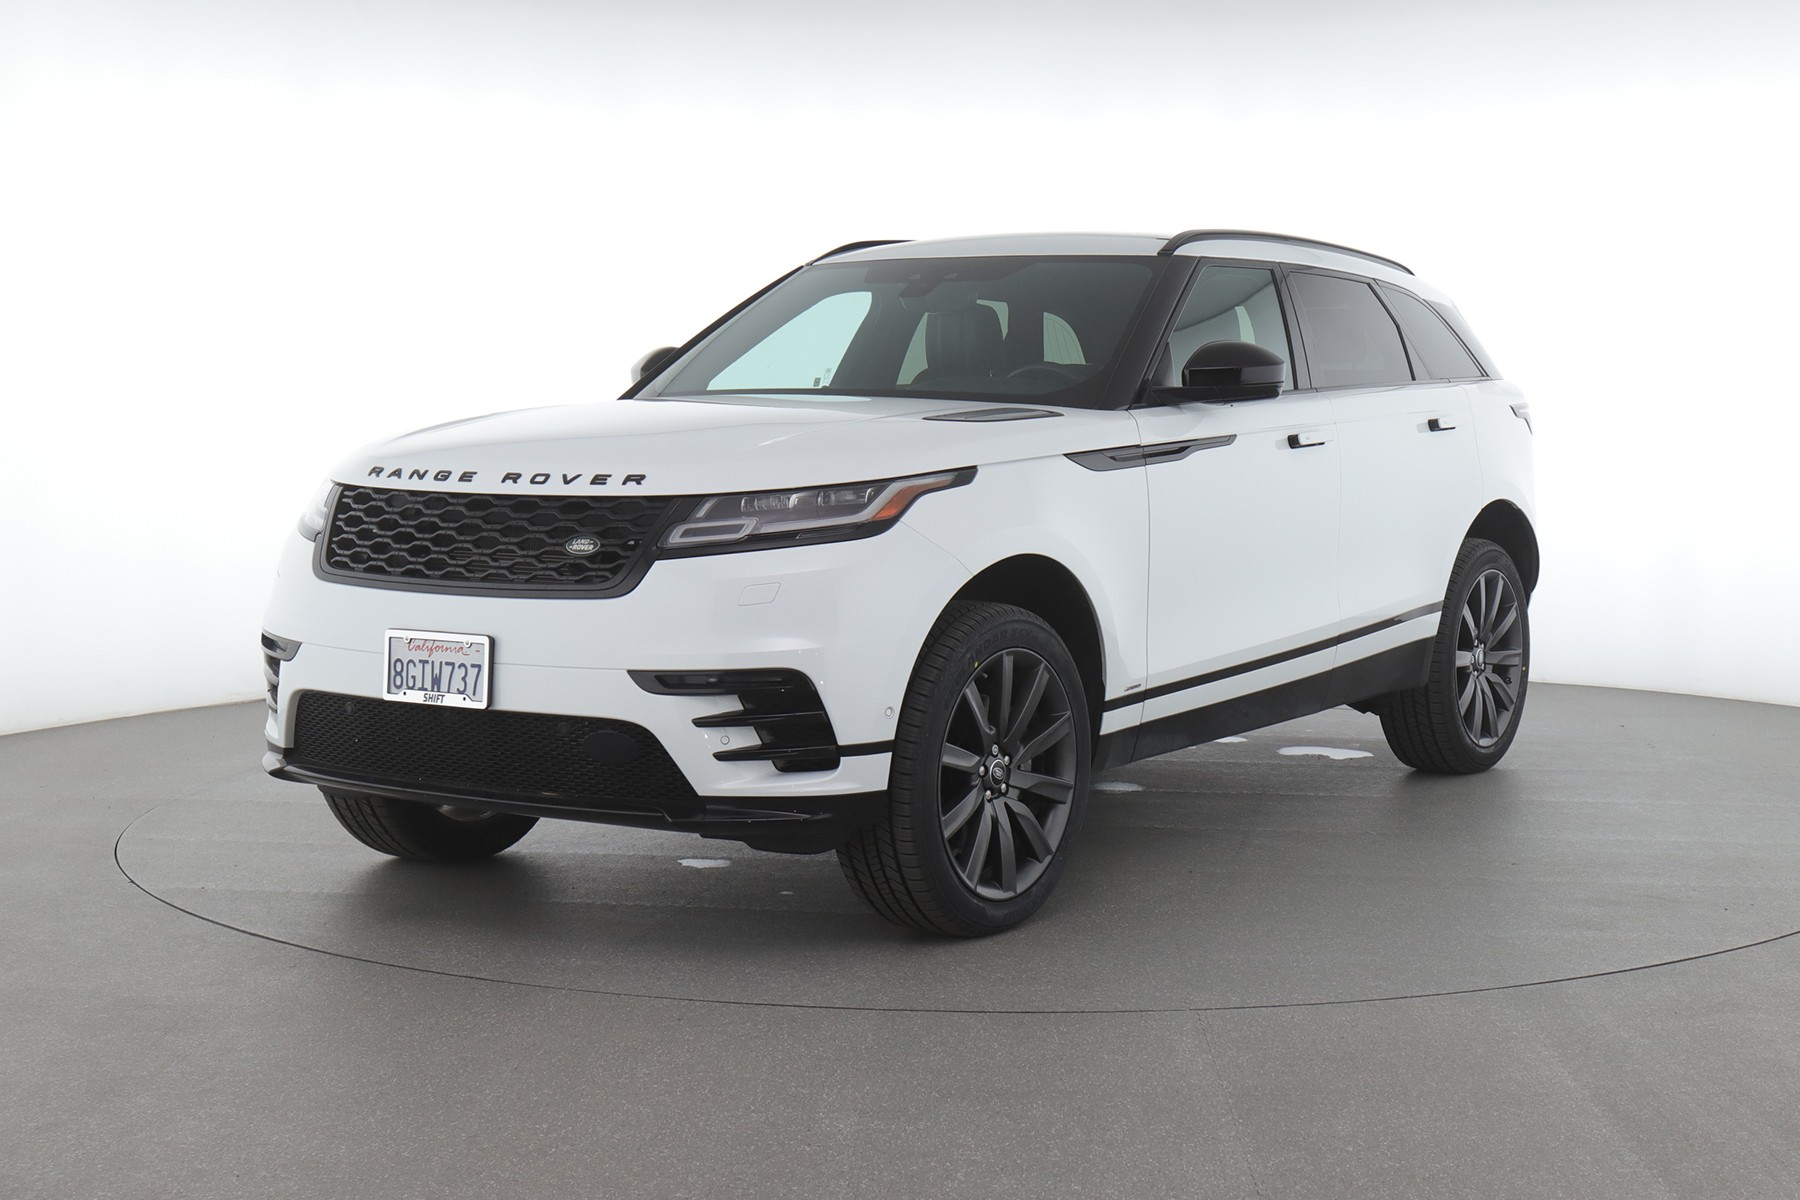 The Best Luxury SUV for Towing